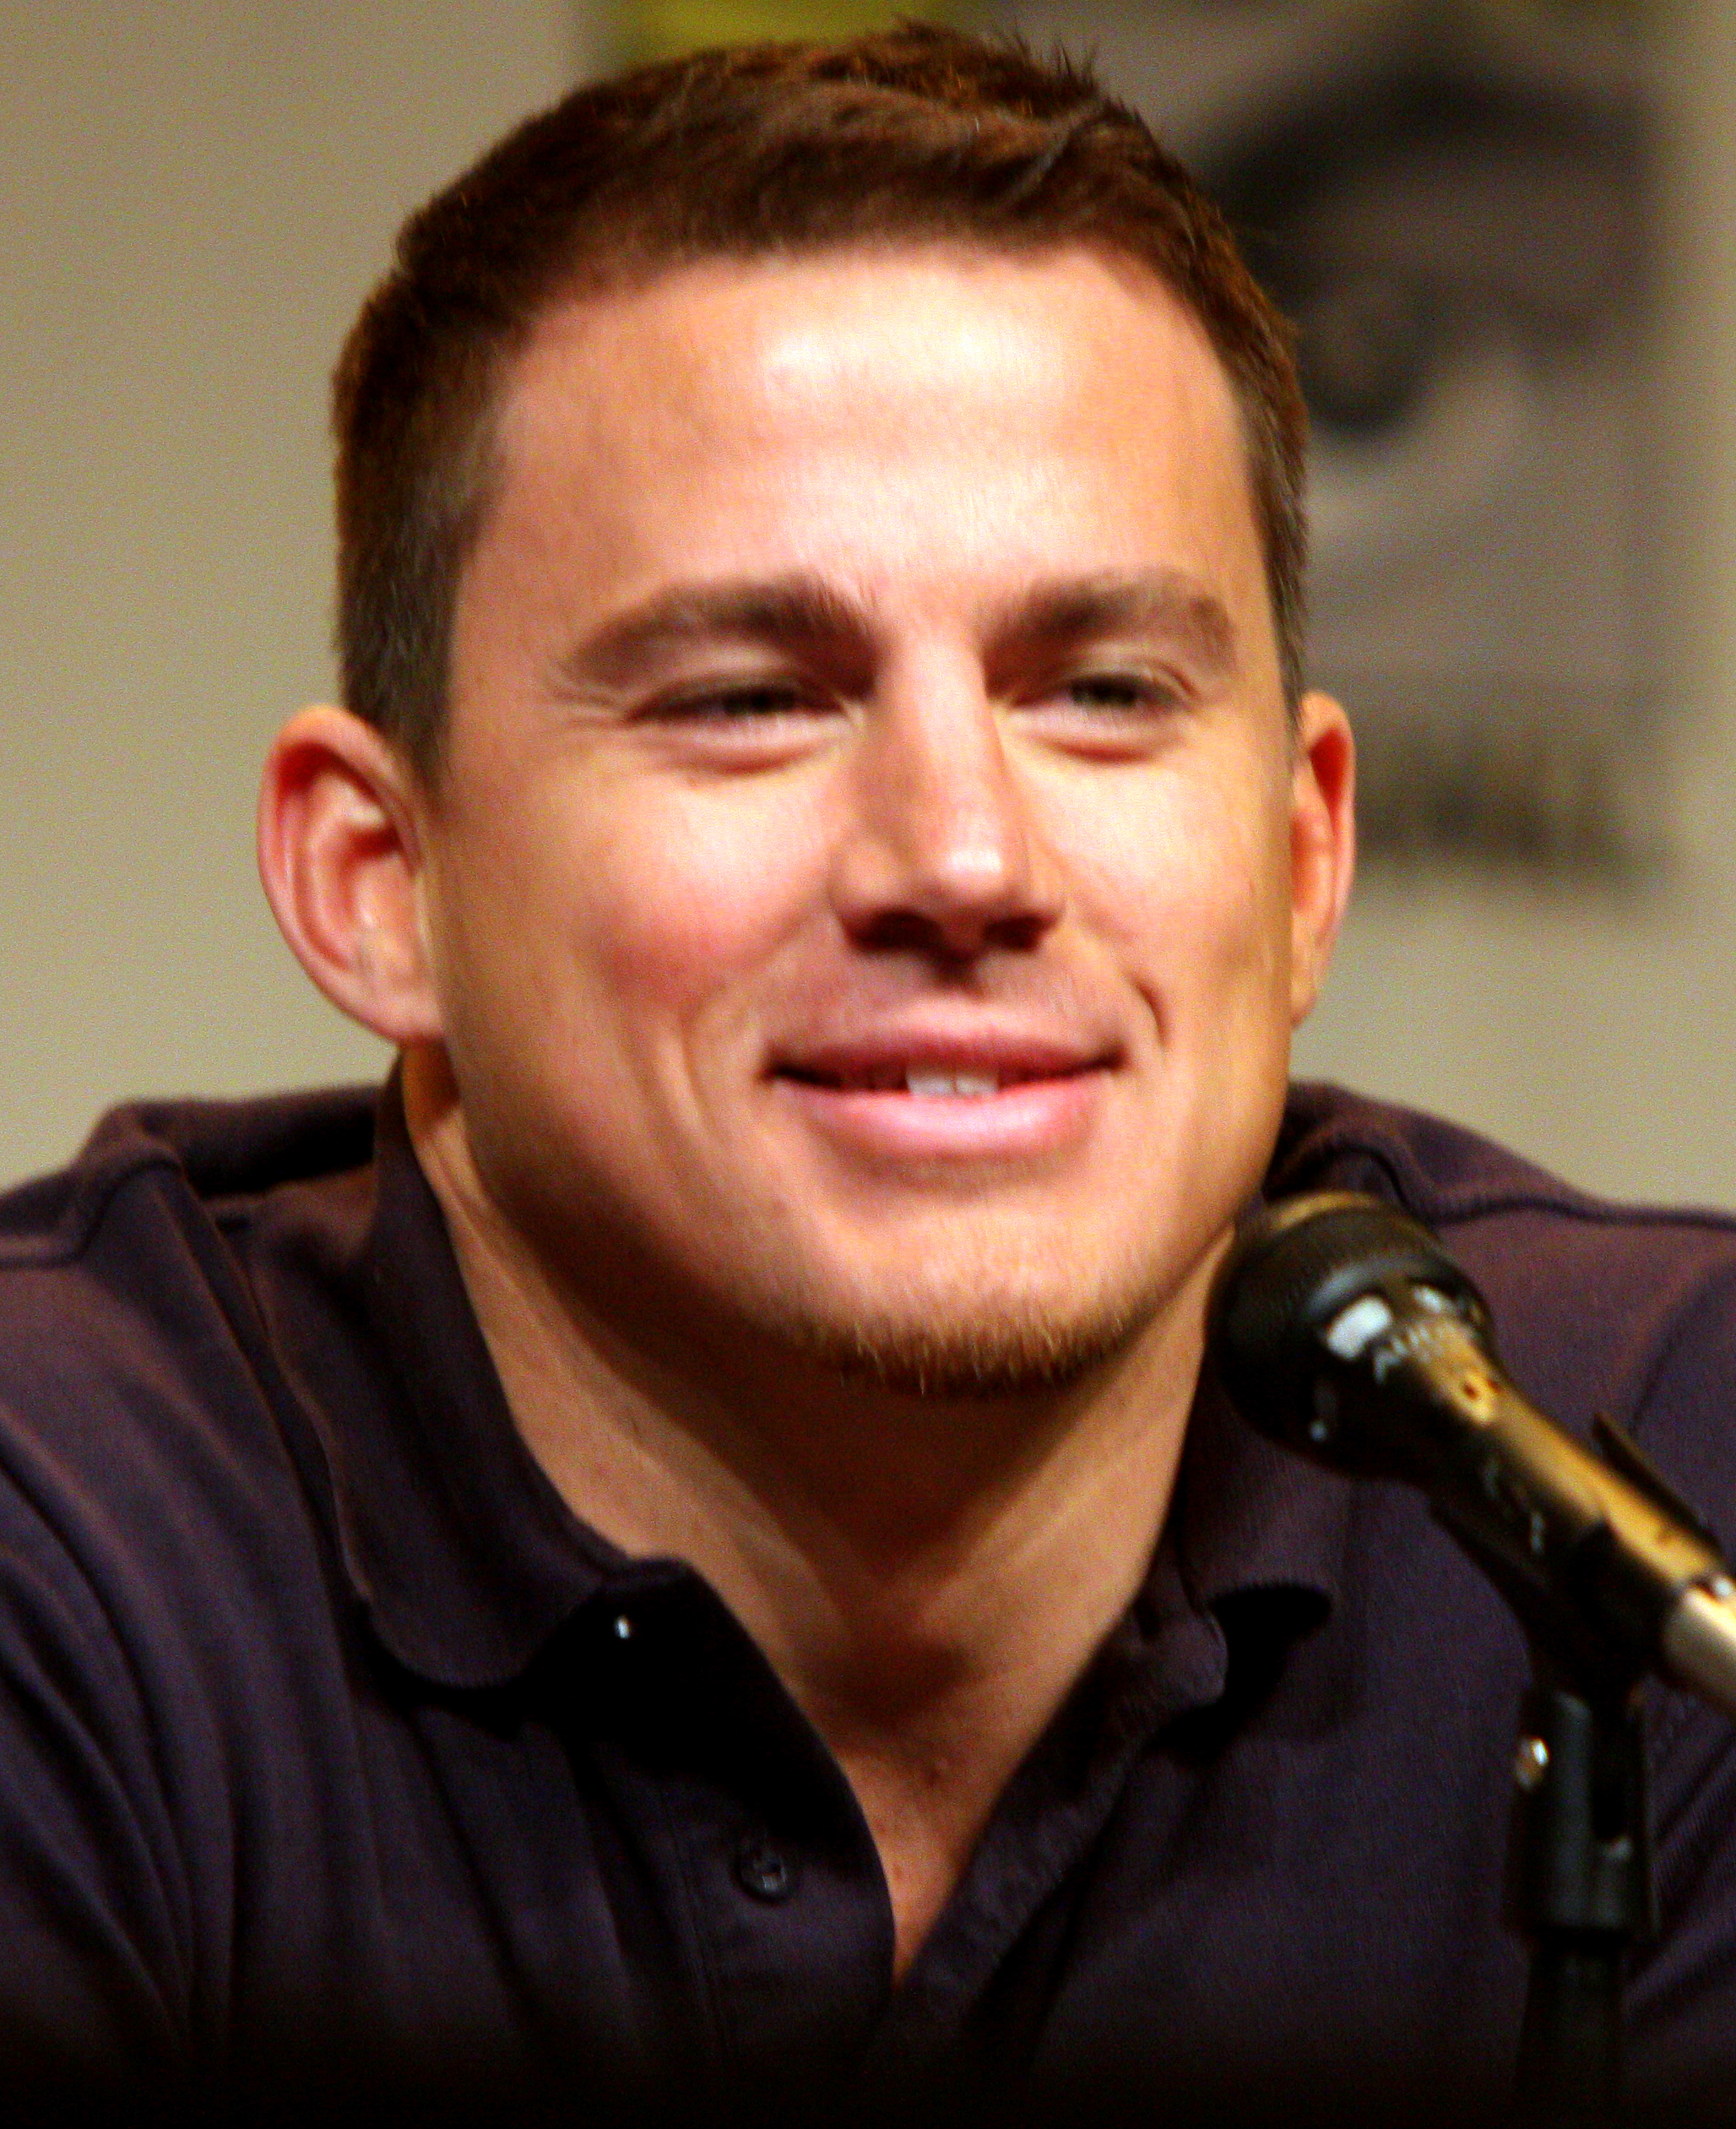 Description Channing Tatum WonderCon, 2012.jpg Channing Tatum